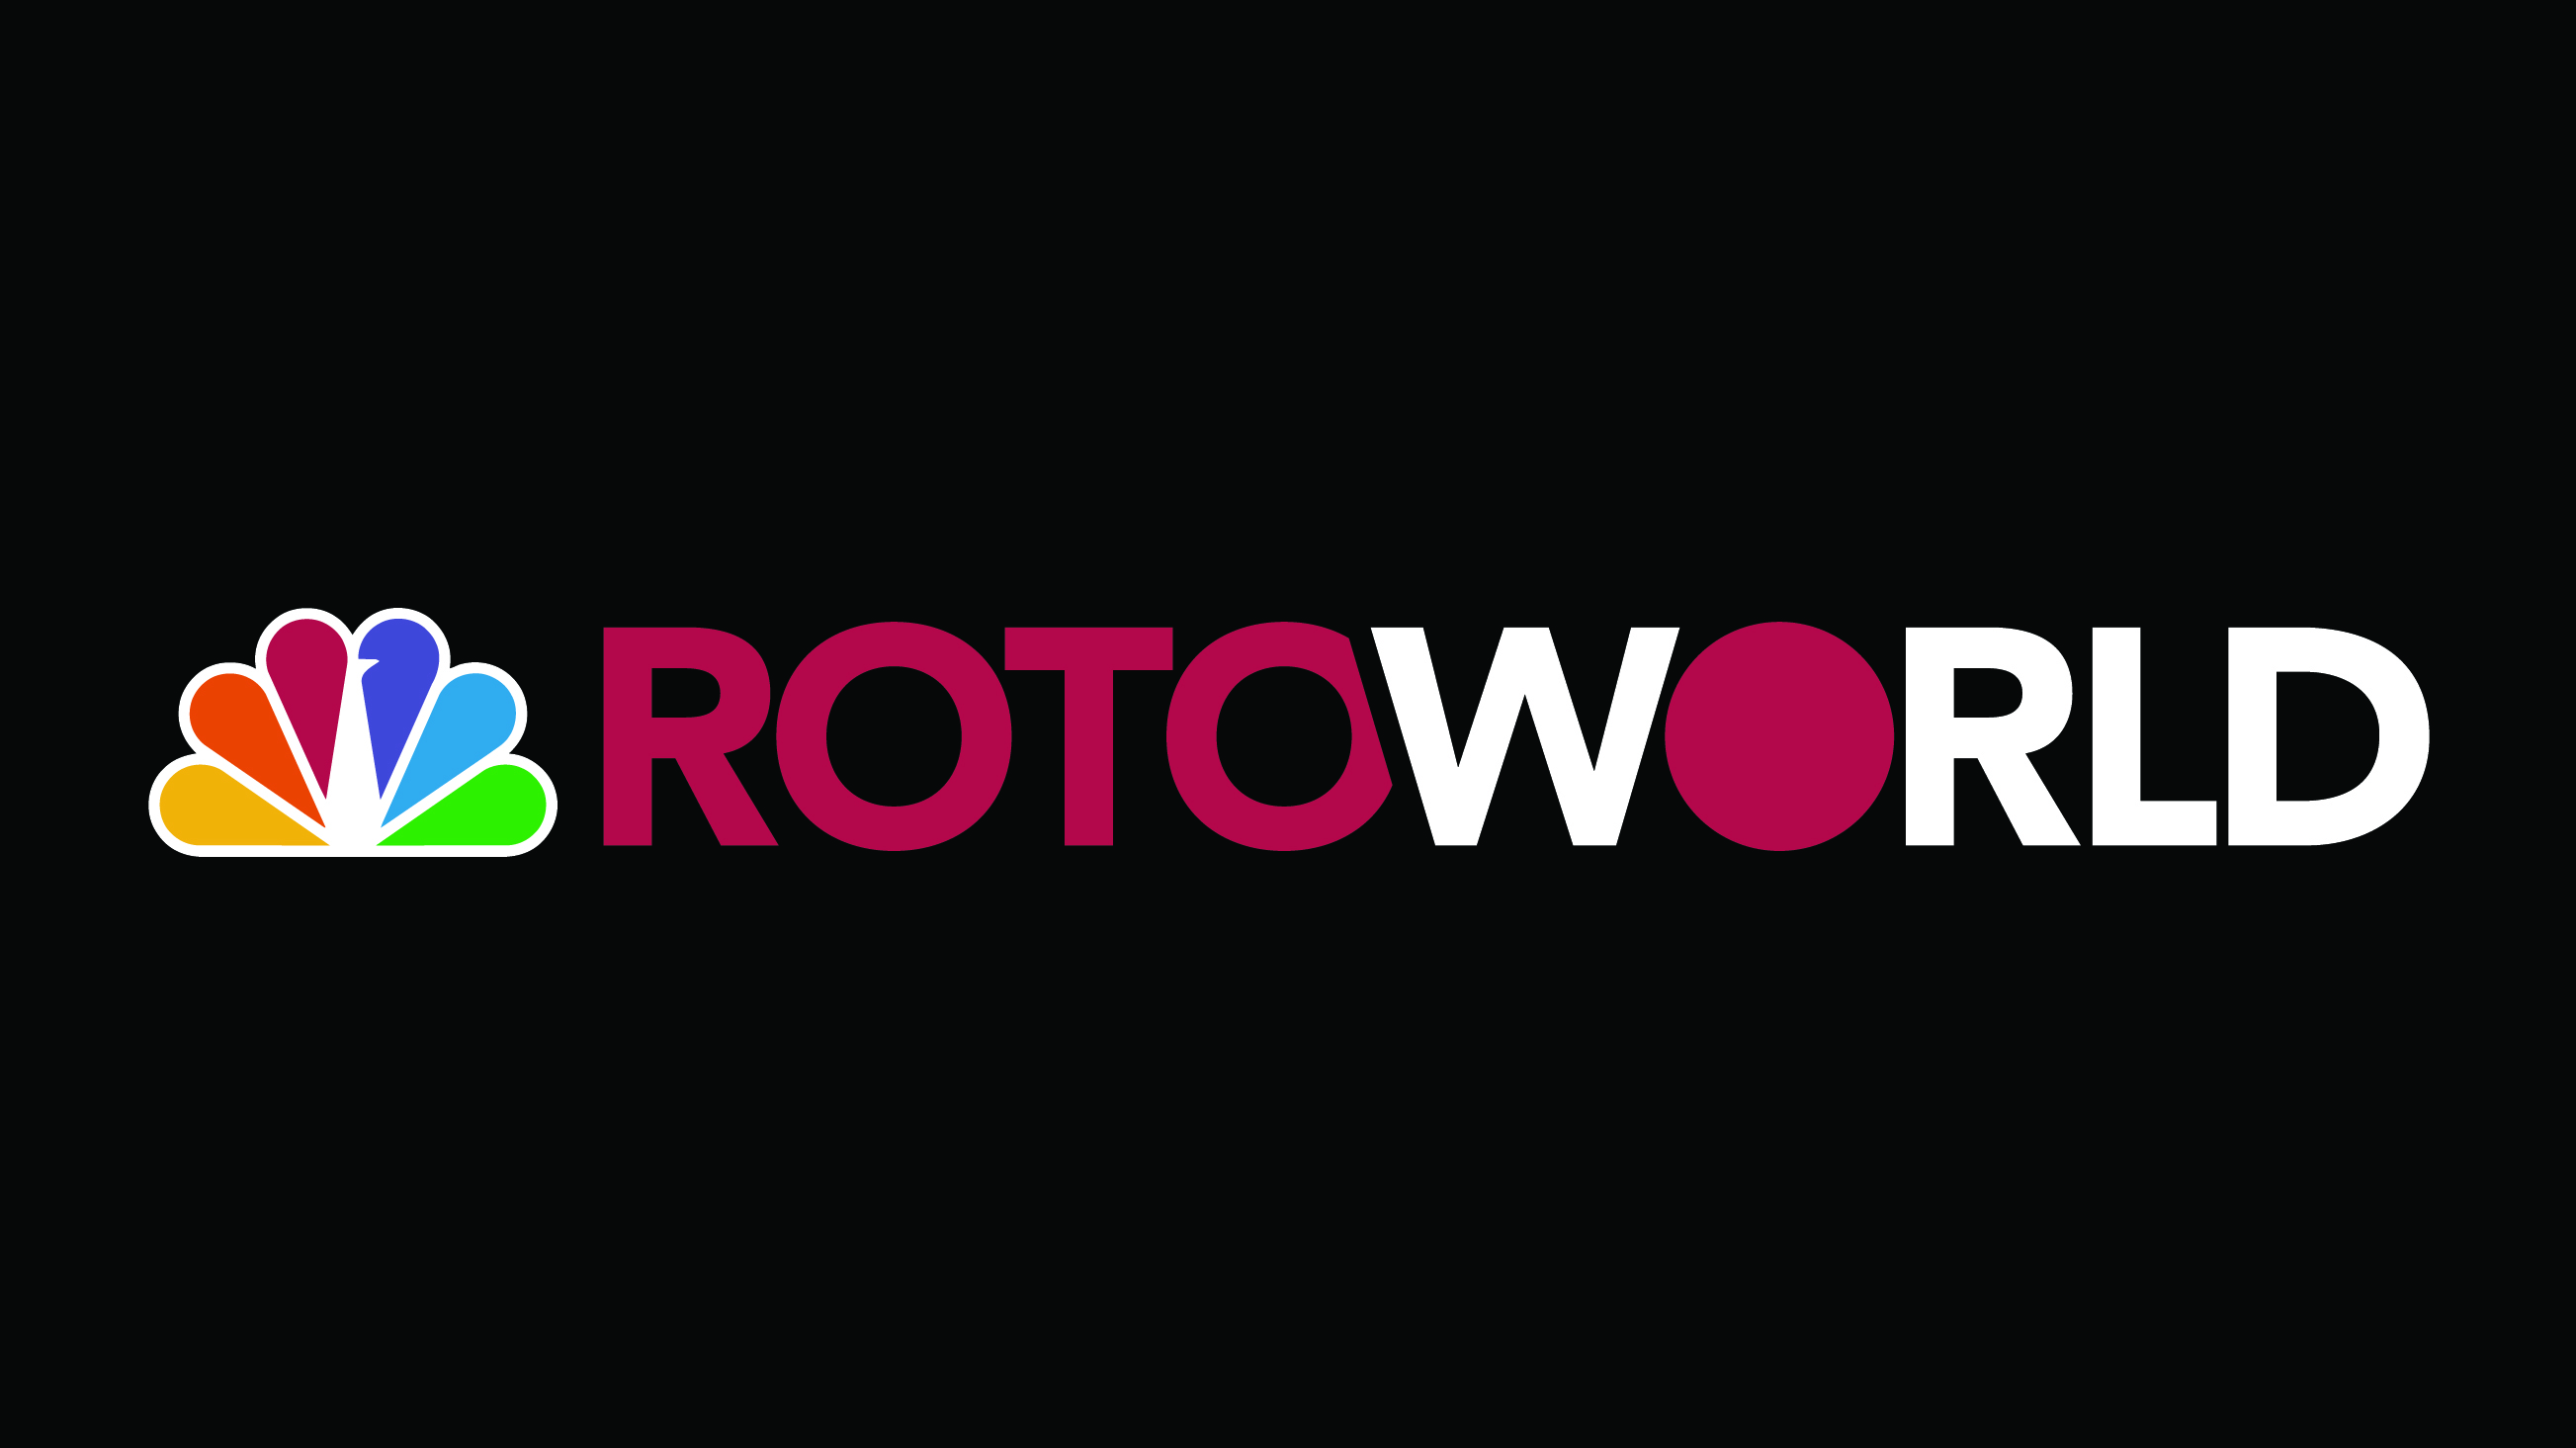 Rotoworld fantasy sports news and analysis for NFL, MLB, NBA, NHL, CFB, Golf, EPL and NASCAR